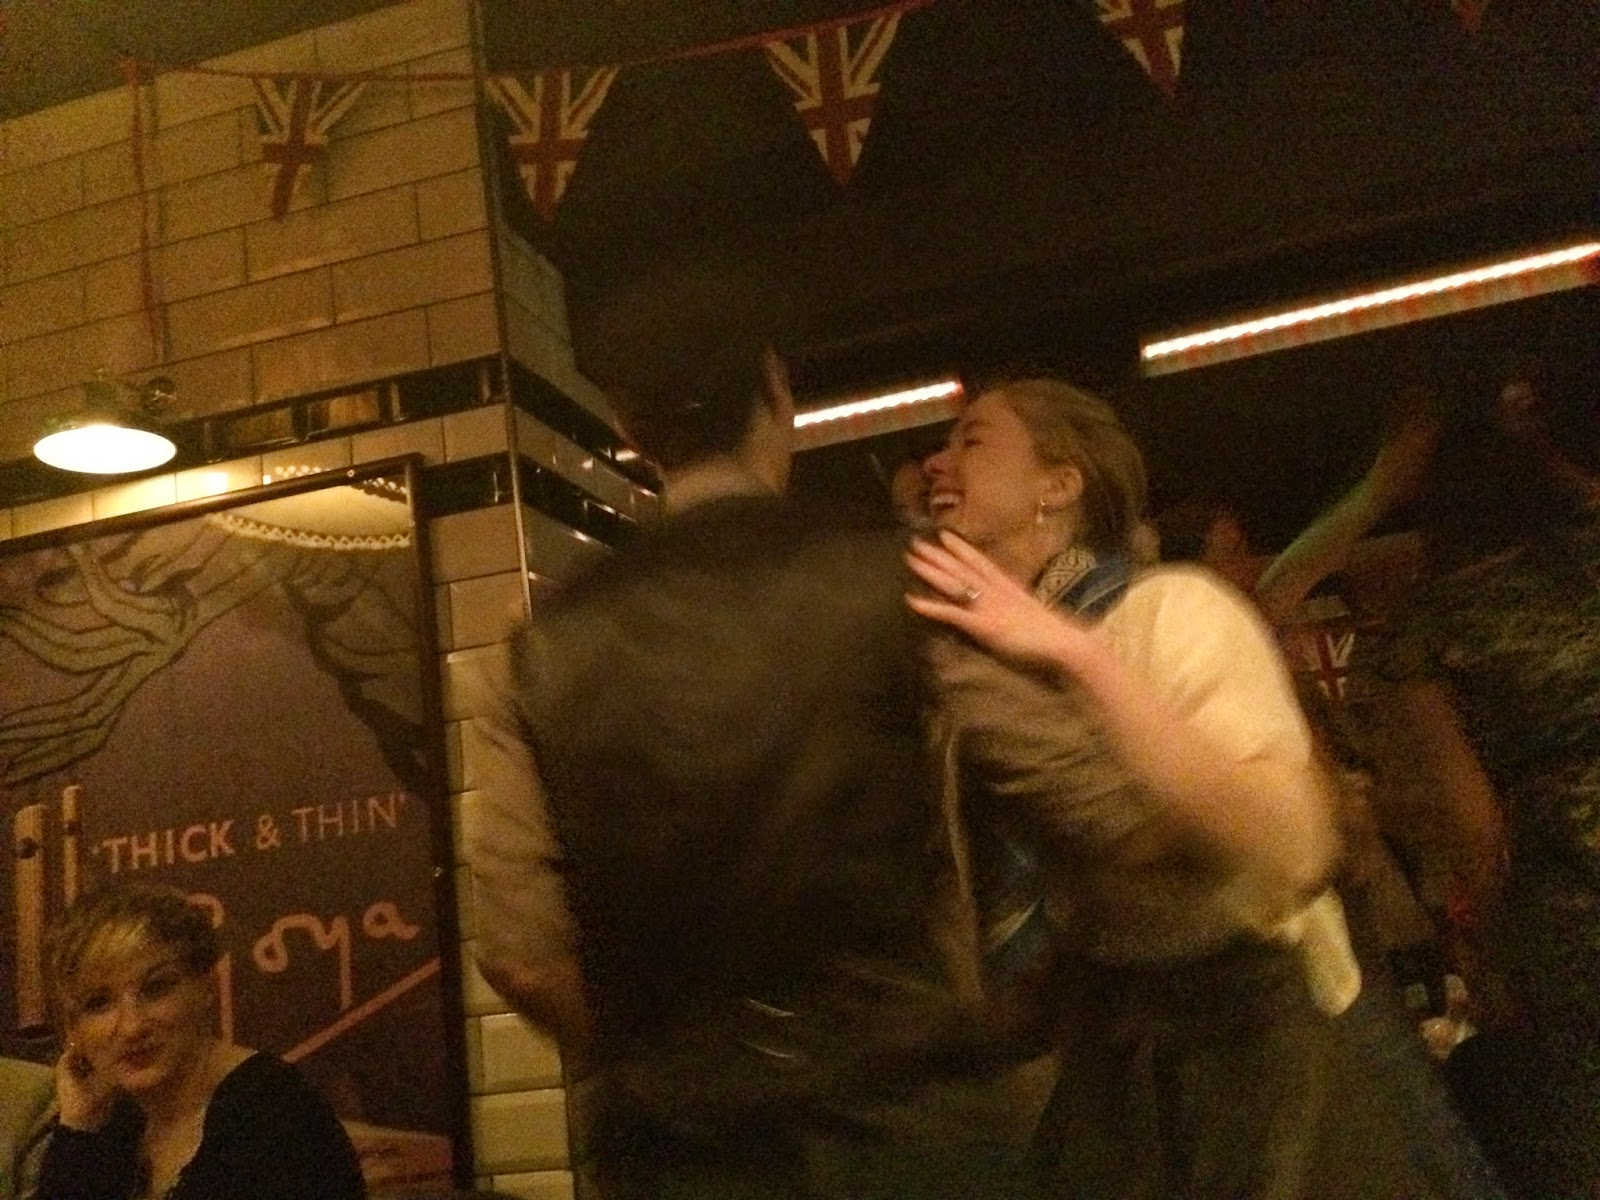 Swing dancers at Cahoots London